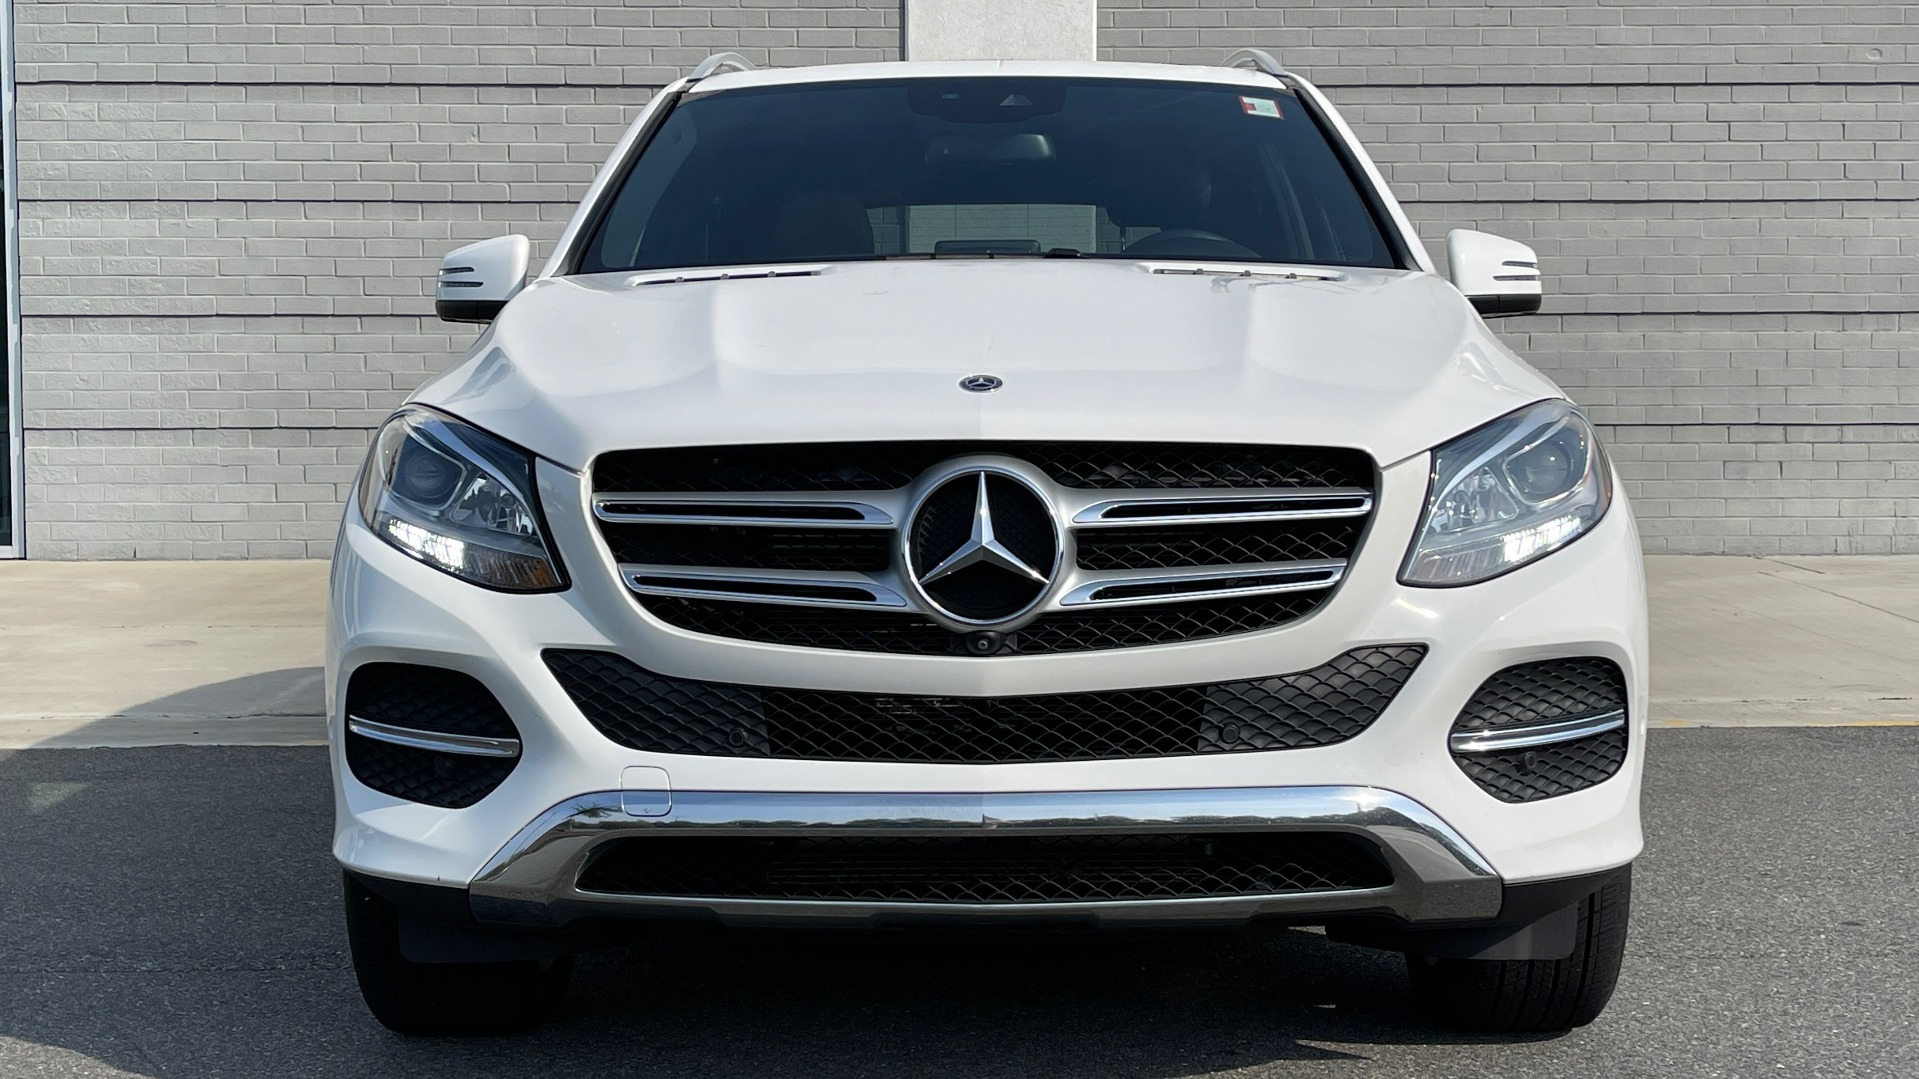 Used 2018 Mercedes-Benz GLE 350 4MATIC PREMIUM / NAV / SUNROOF / HTD STS / TRAILER HITCH / REARVIEW for sale $36,295 at Formula Imports in Charlotte NC 28227 15